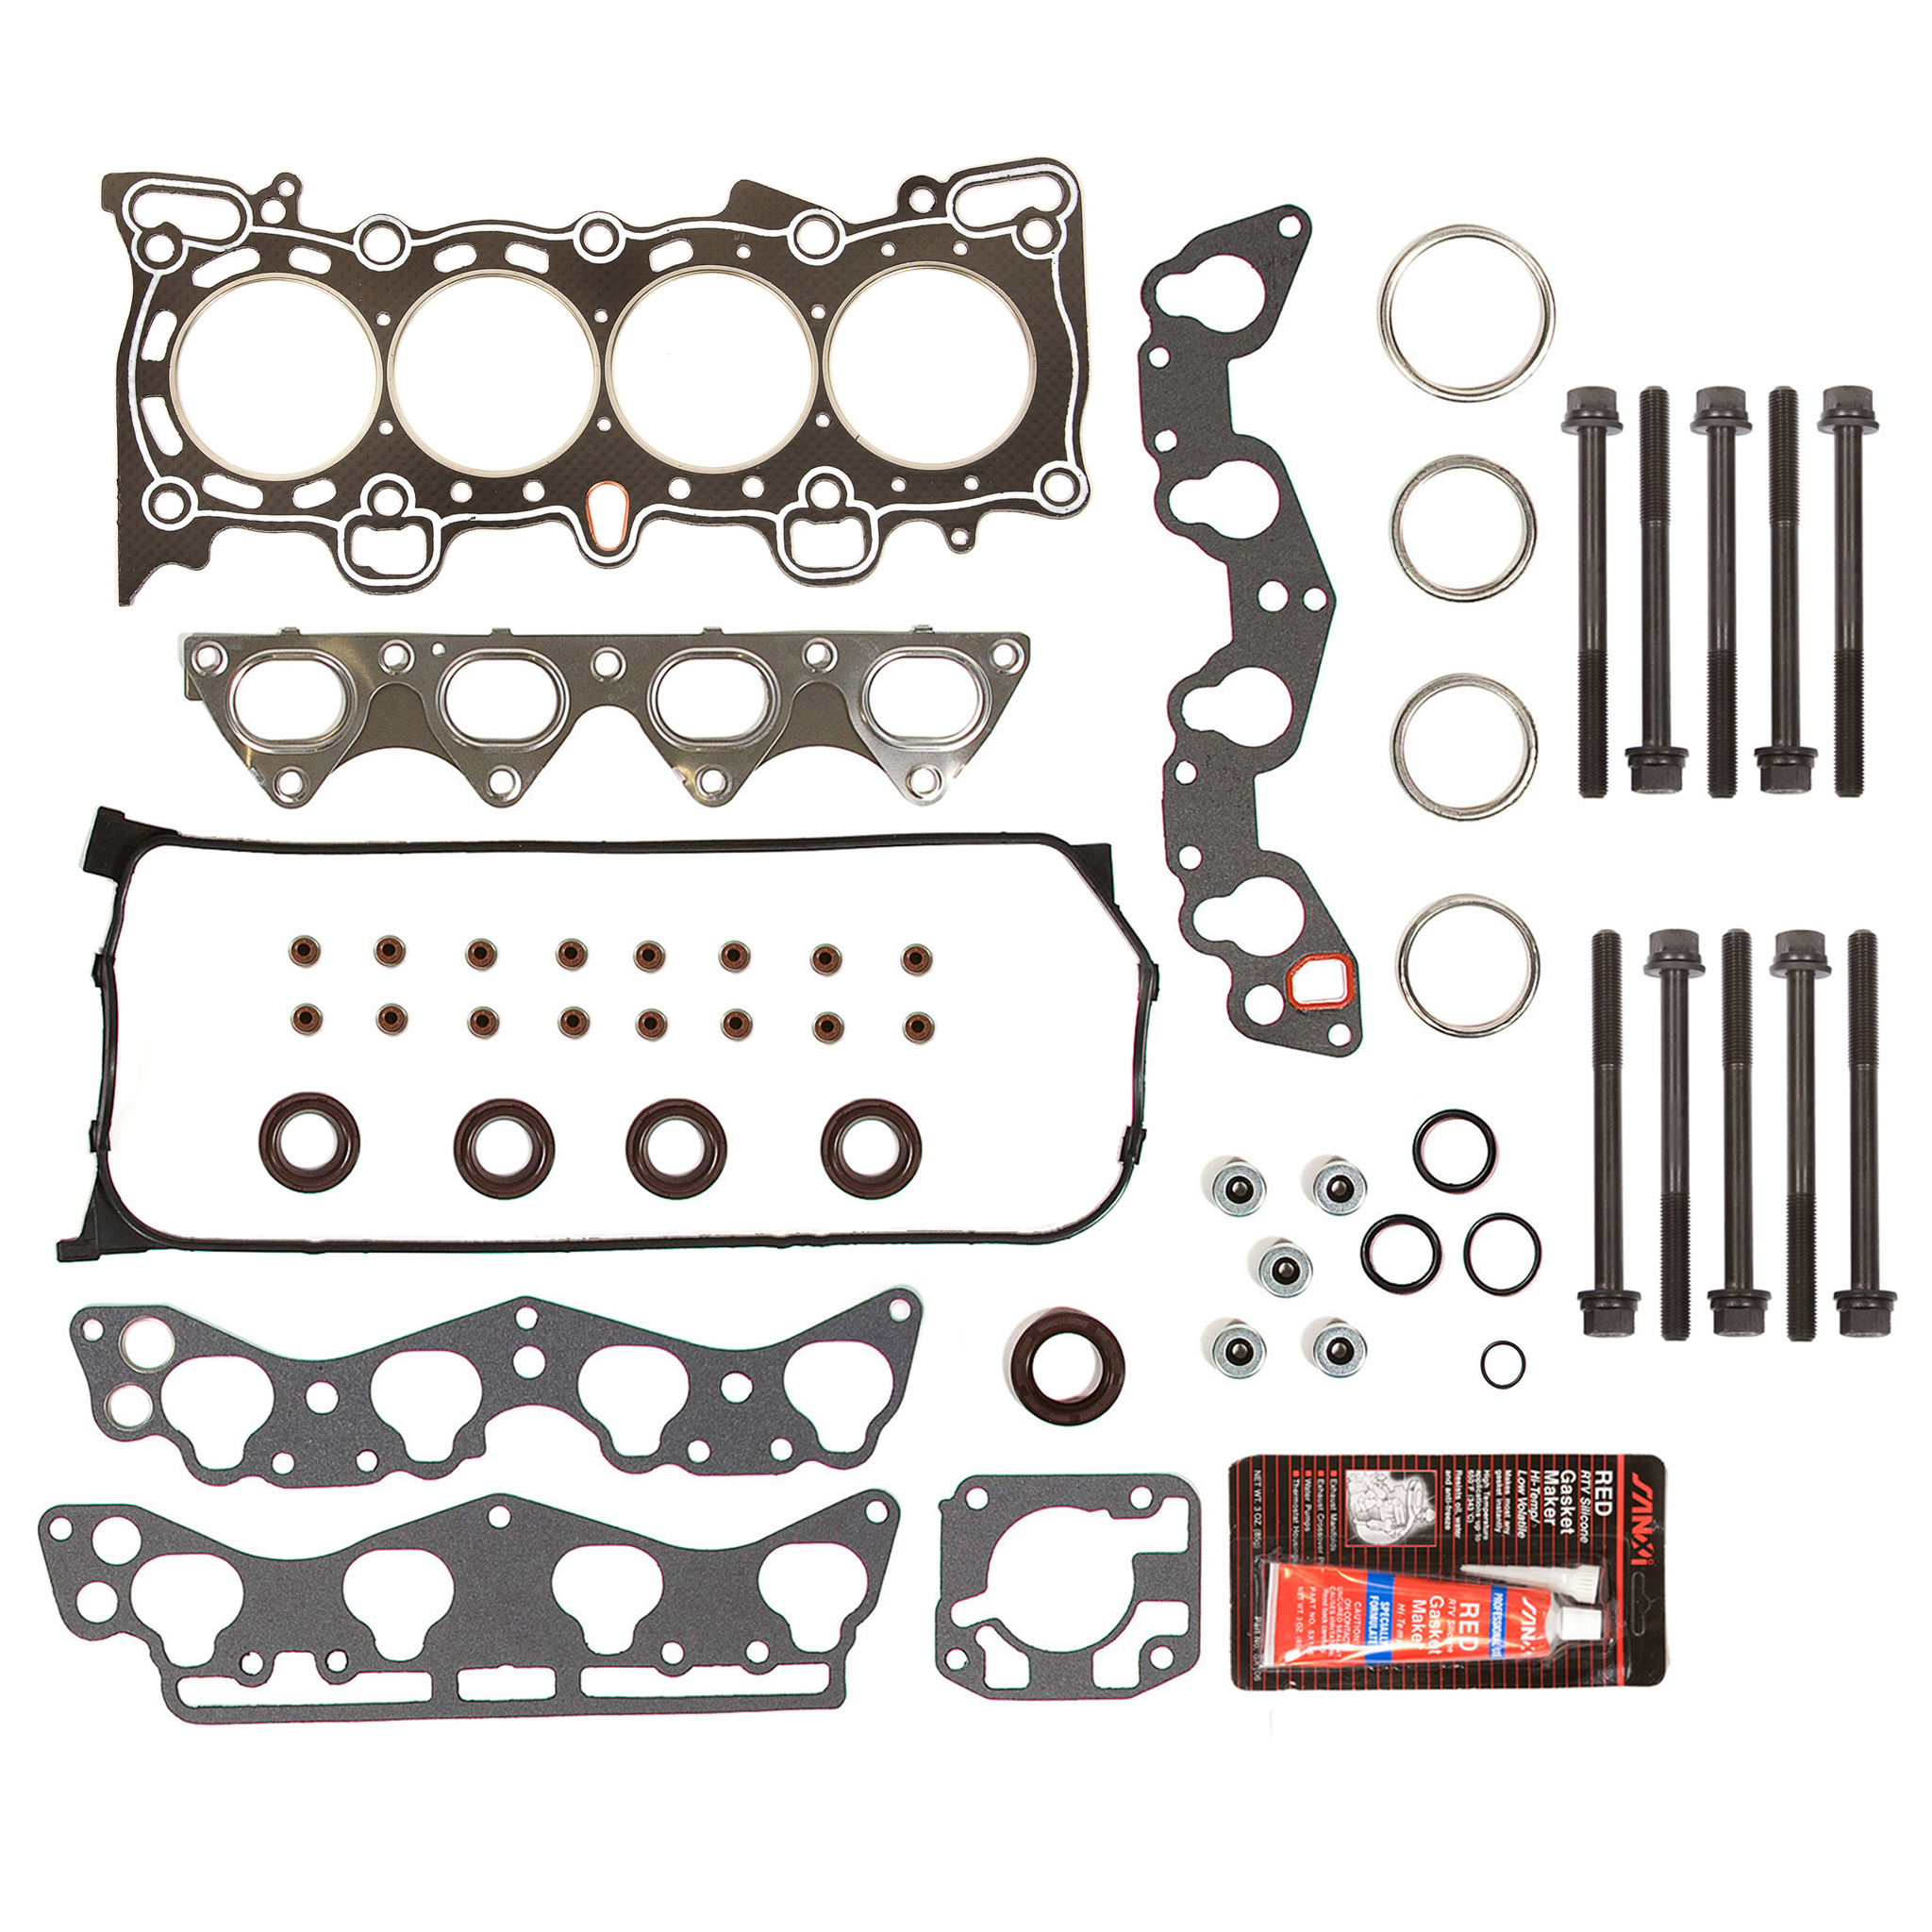 Graphite Full Gasket Set Fit 96-00 Honda Civic Del Sol D16Y5 D16Y7 D16Y8 D16B5